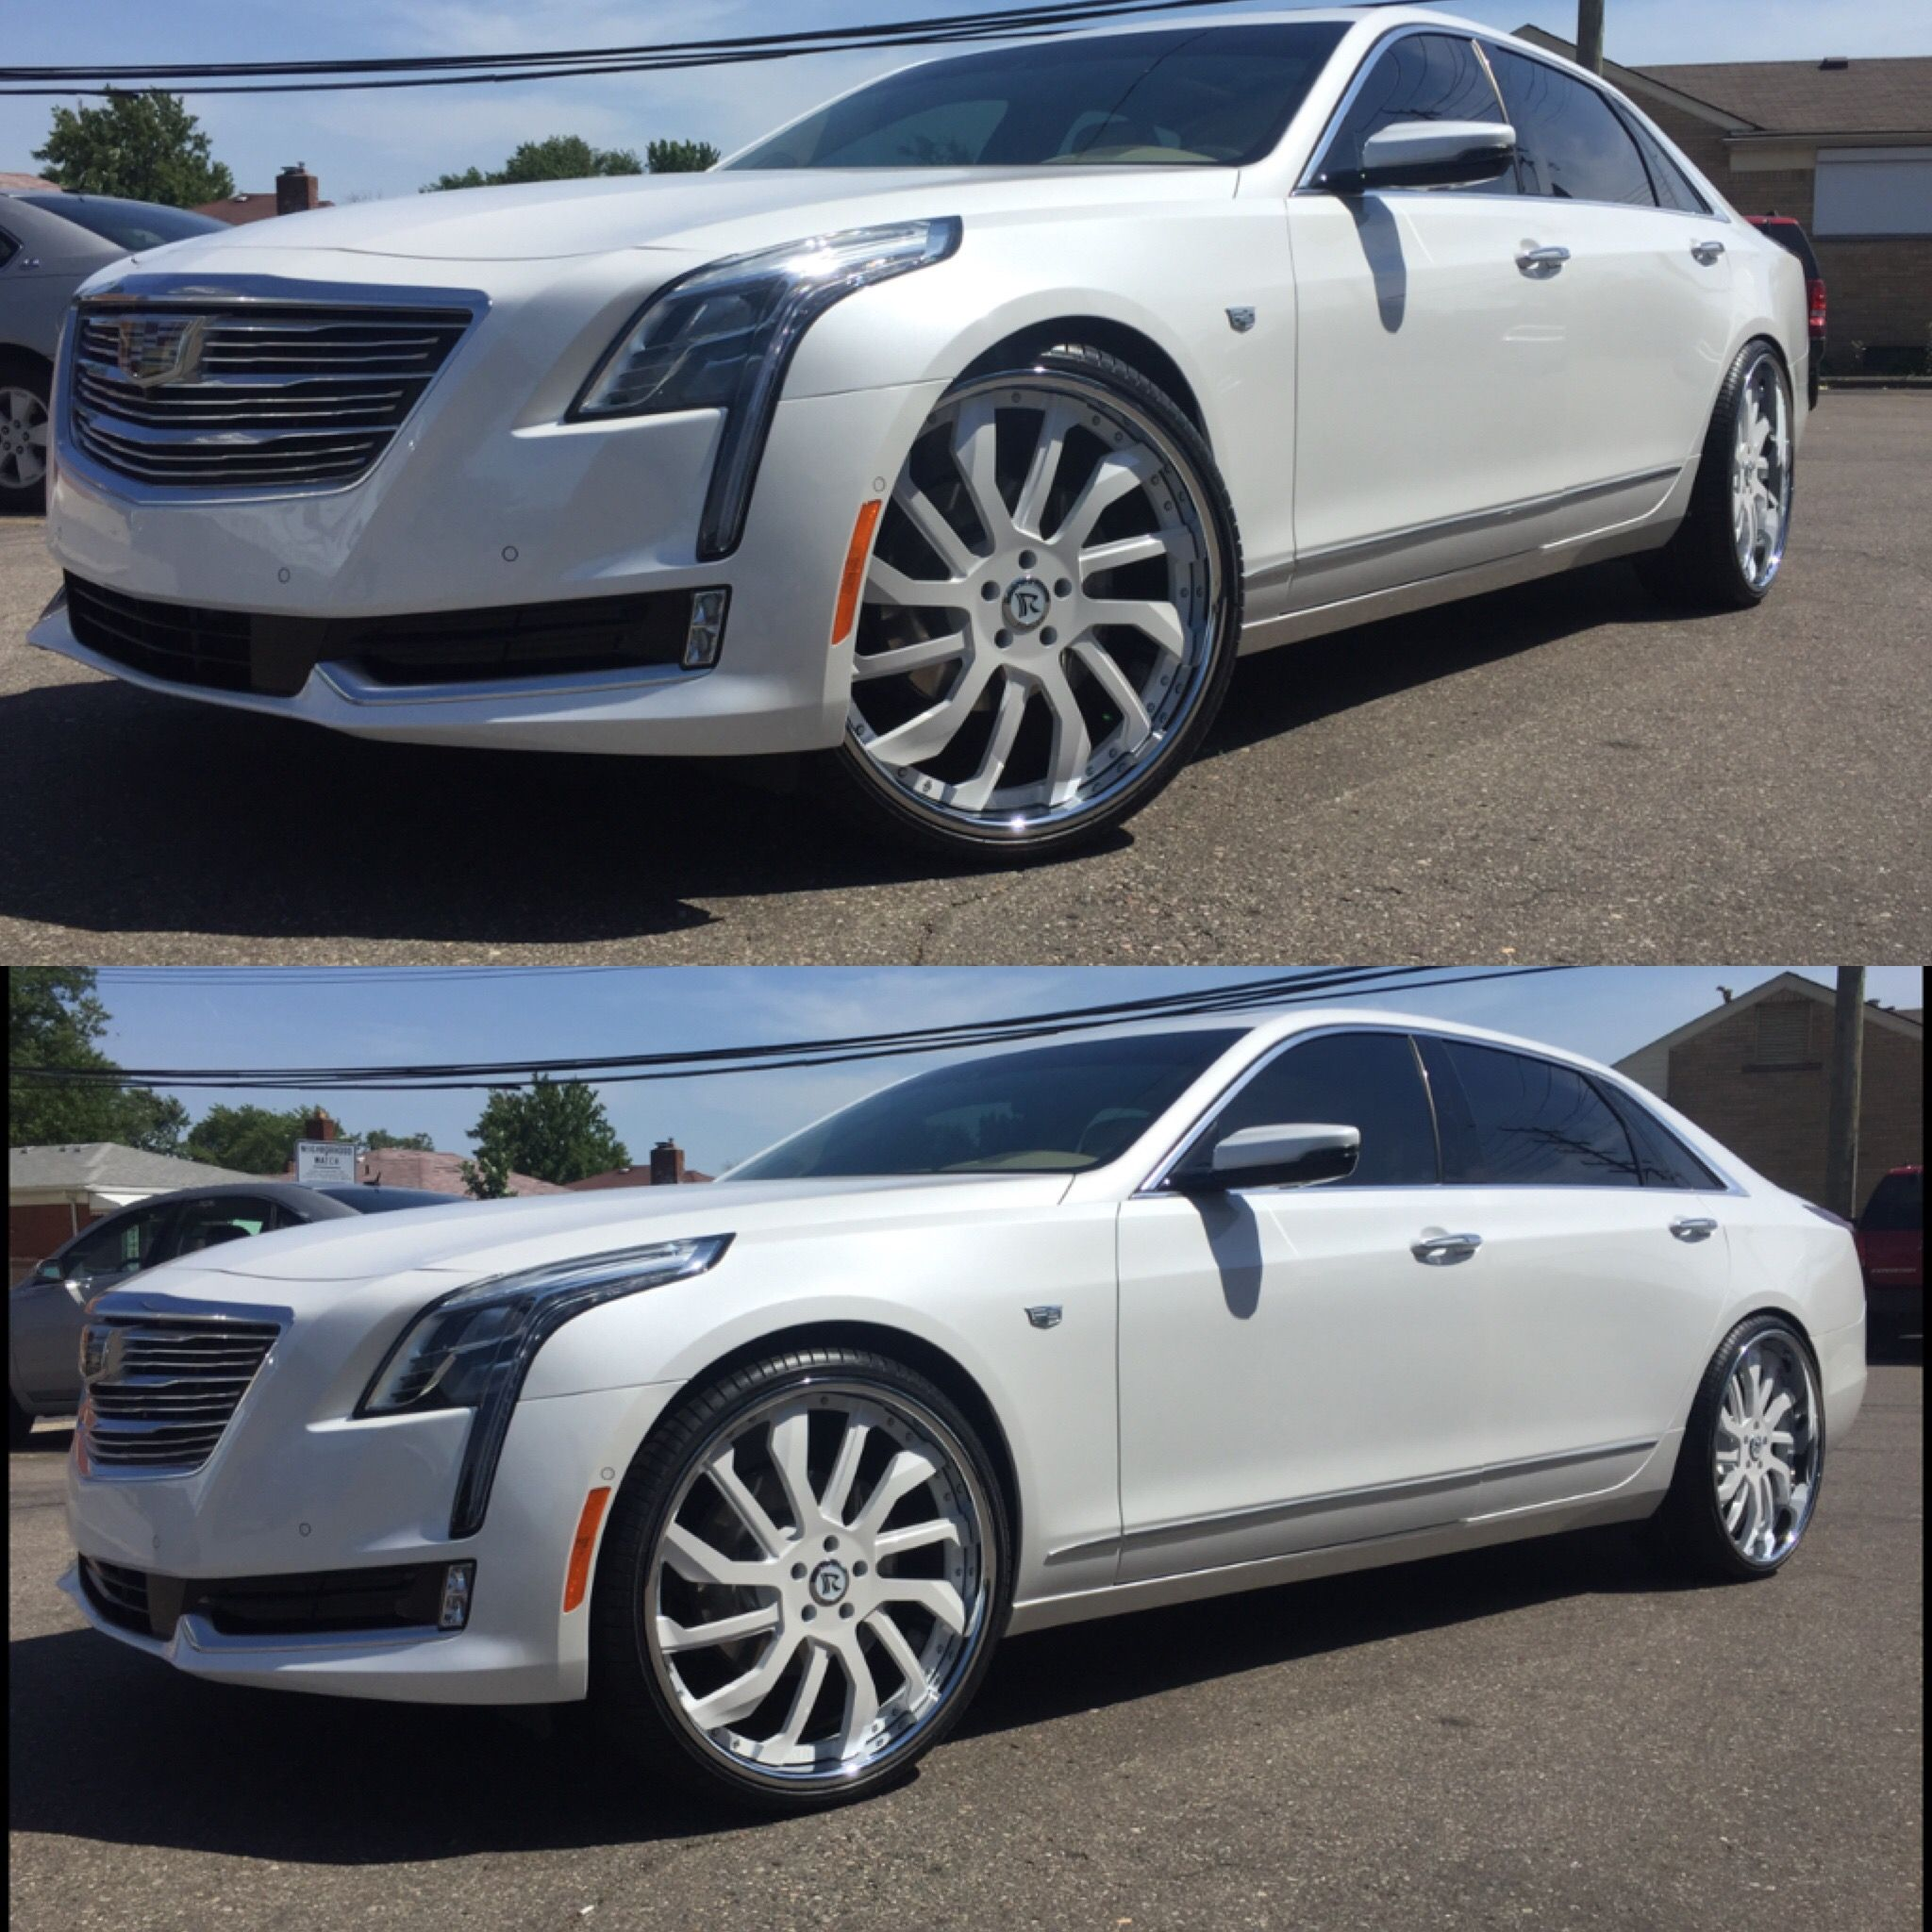 2017 Ct6 Cadillac On 24 S Cars Cadillac Cars Custom Cars